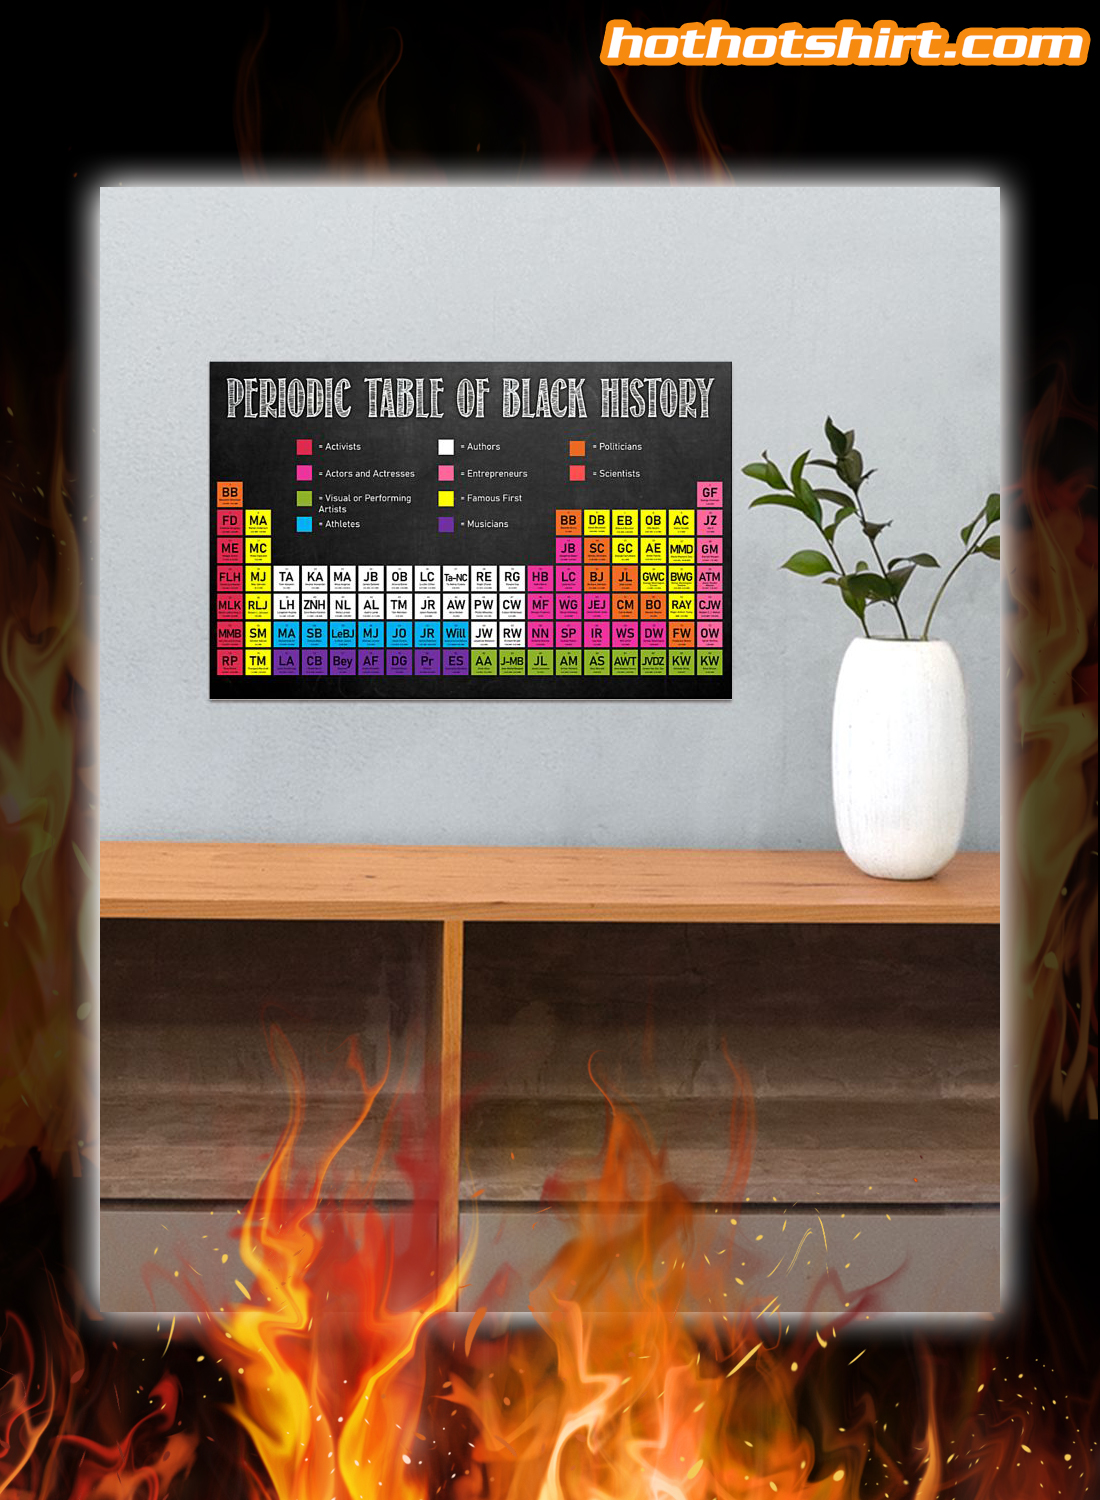 Black History Periodic Table Poster